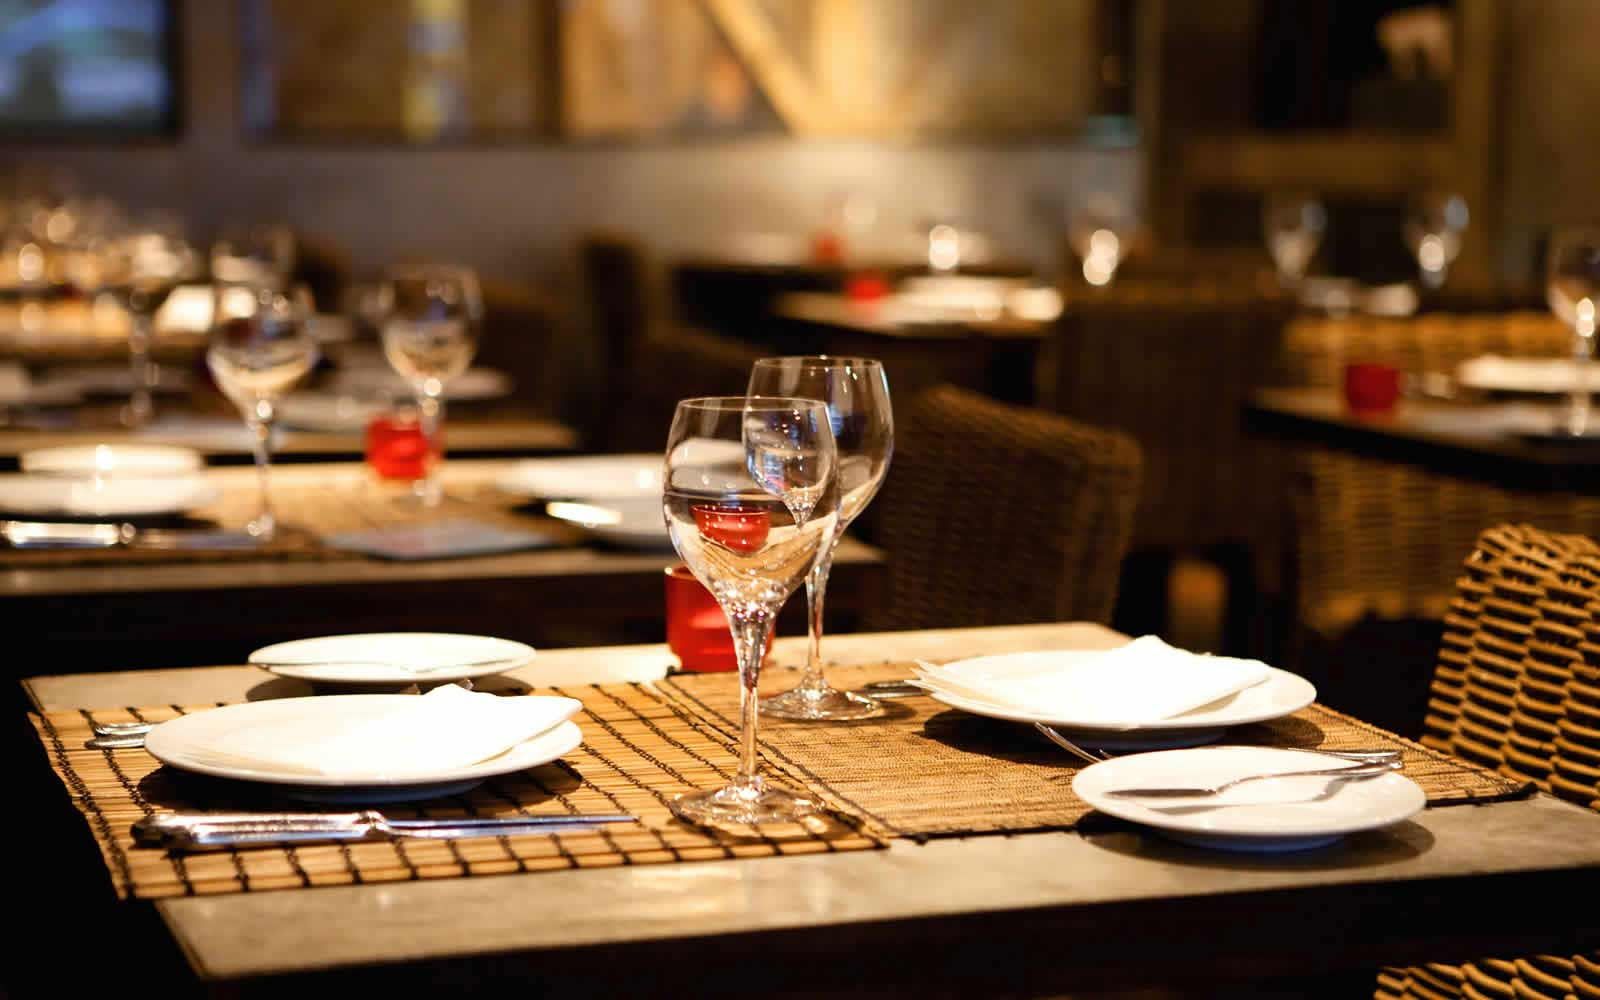 Restaurant Dining Room Tabletop